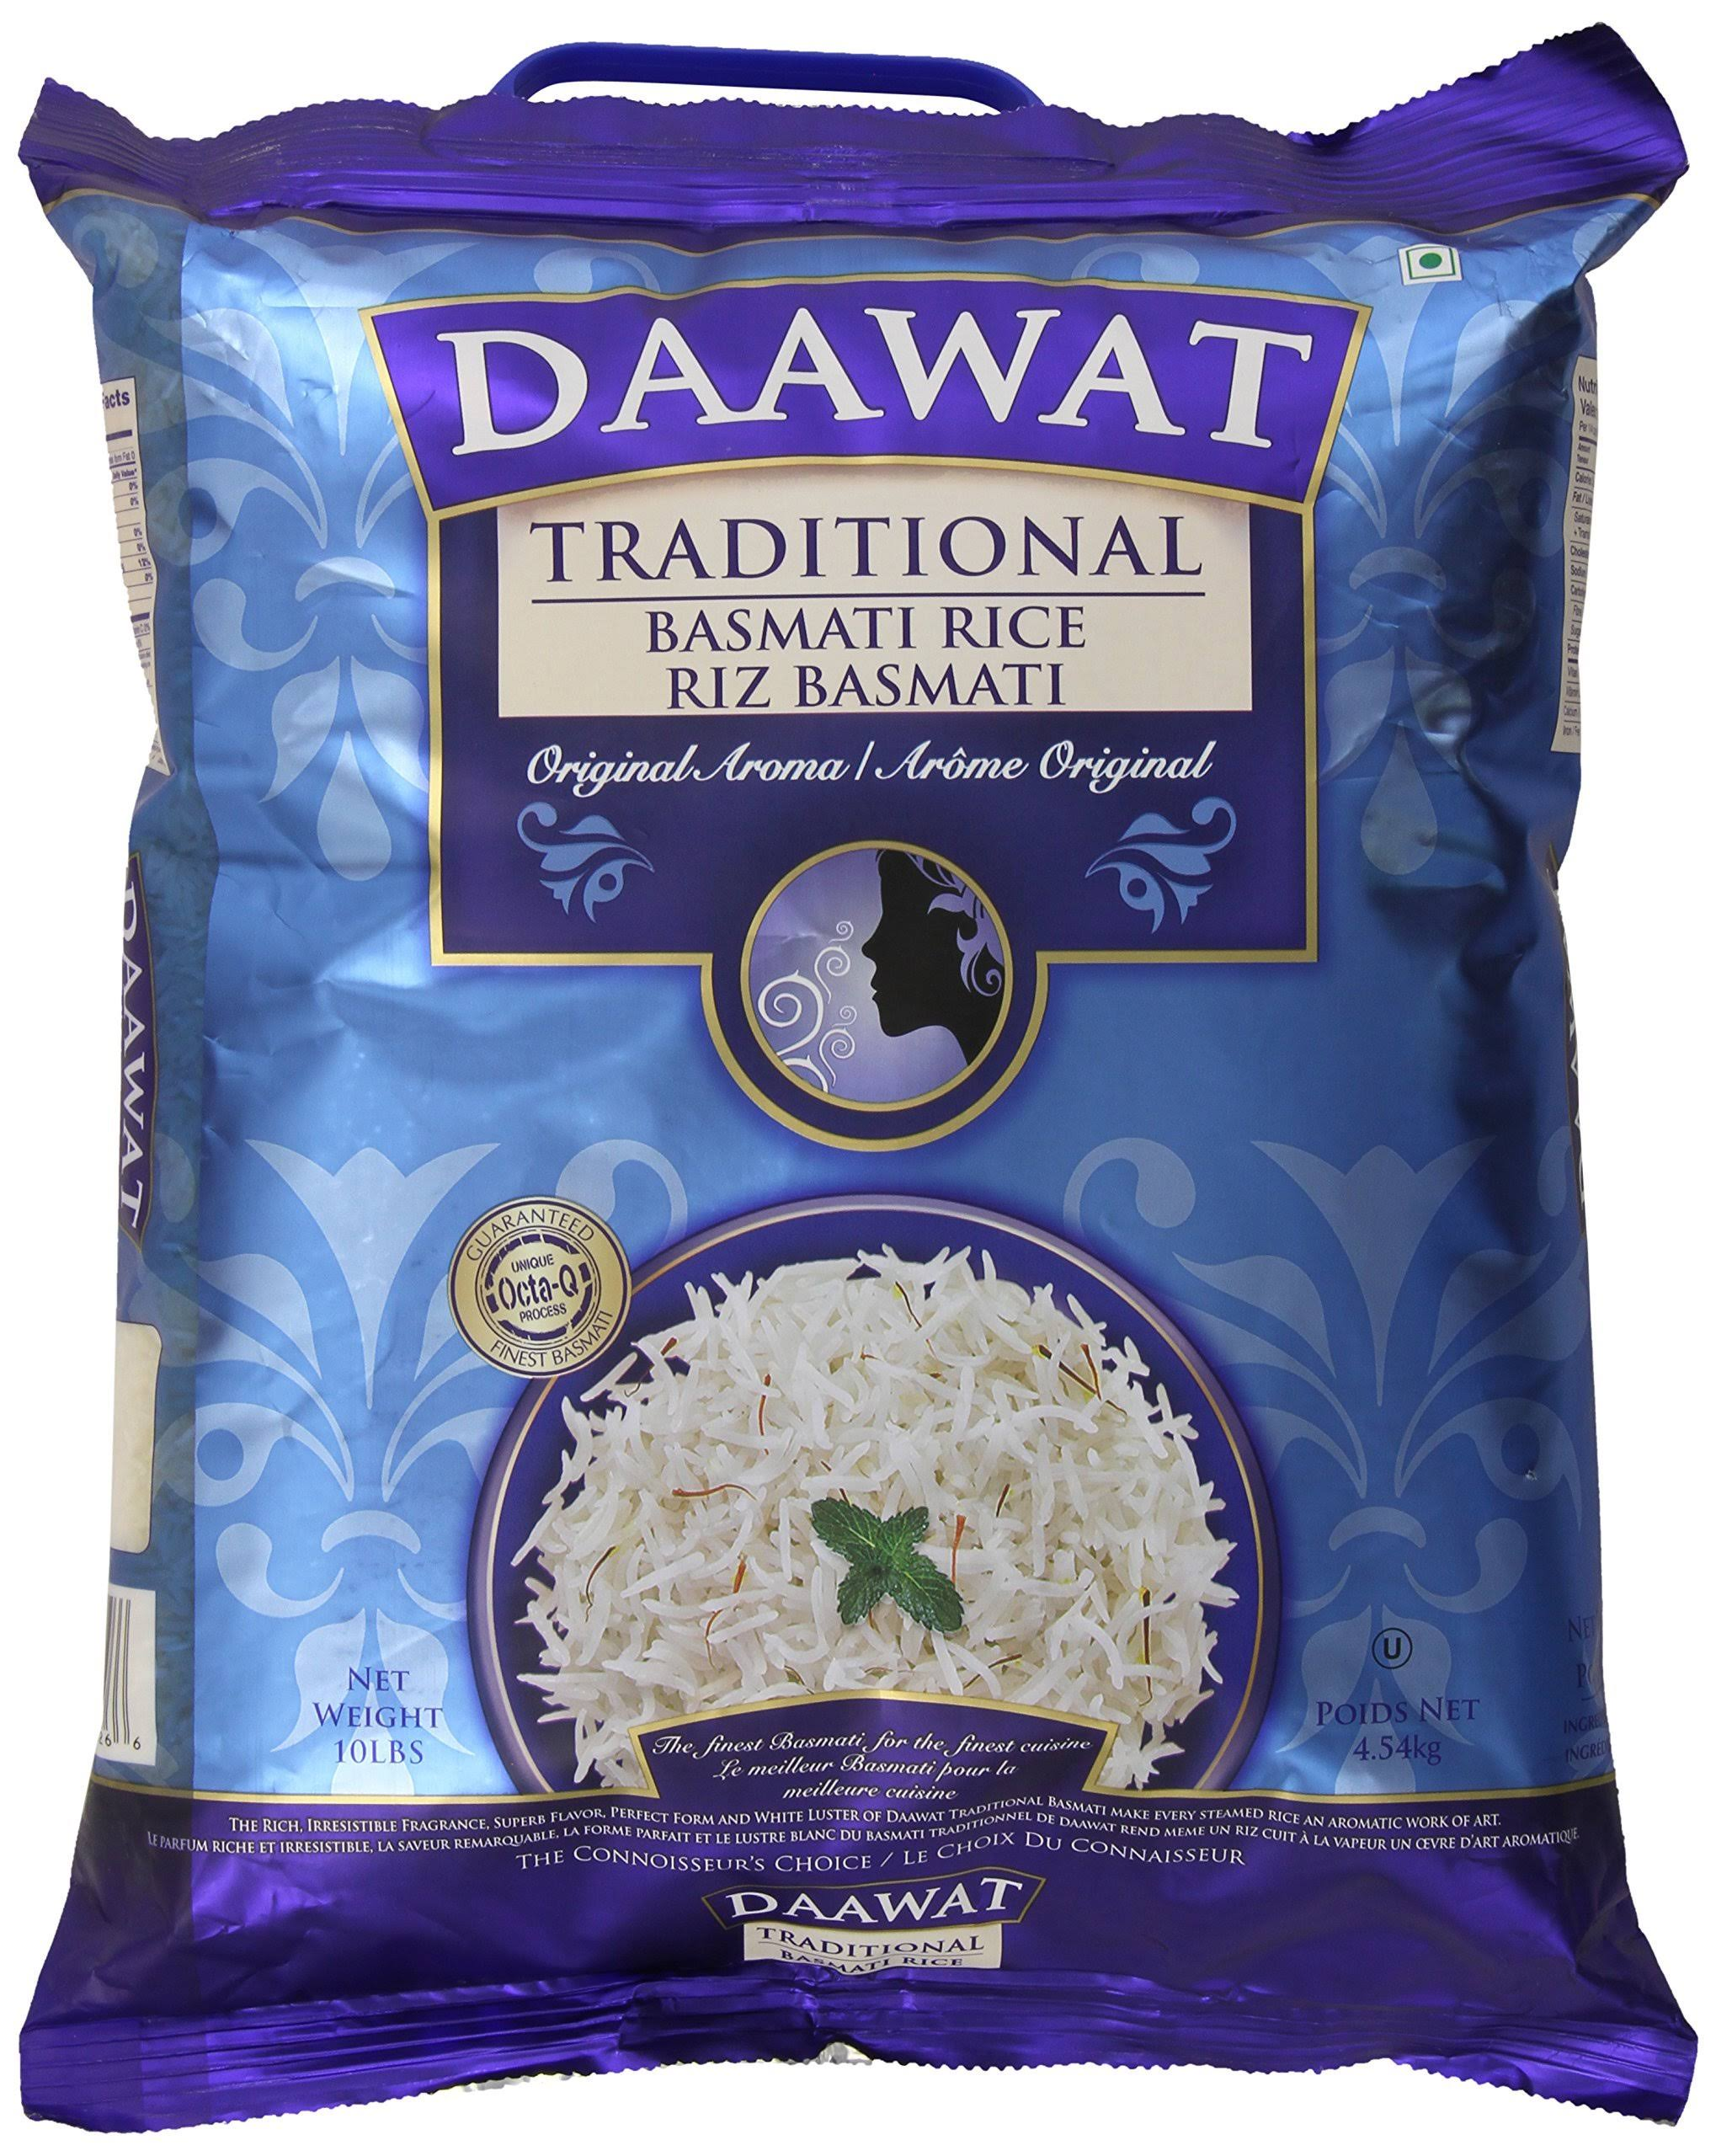 Daawat Traditional Basmati Rice - 10lbs